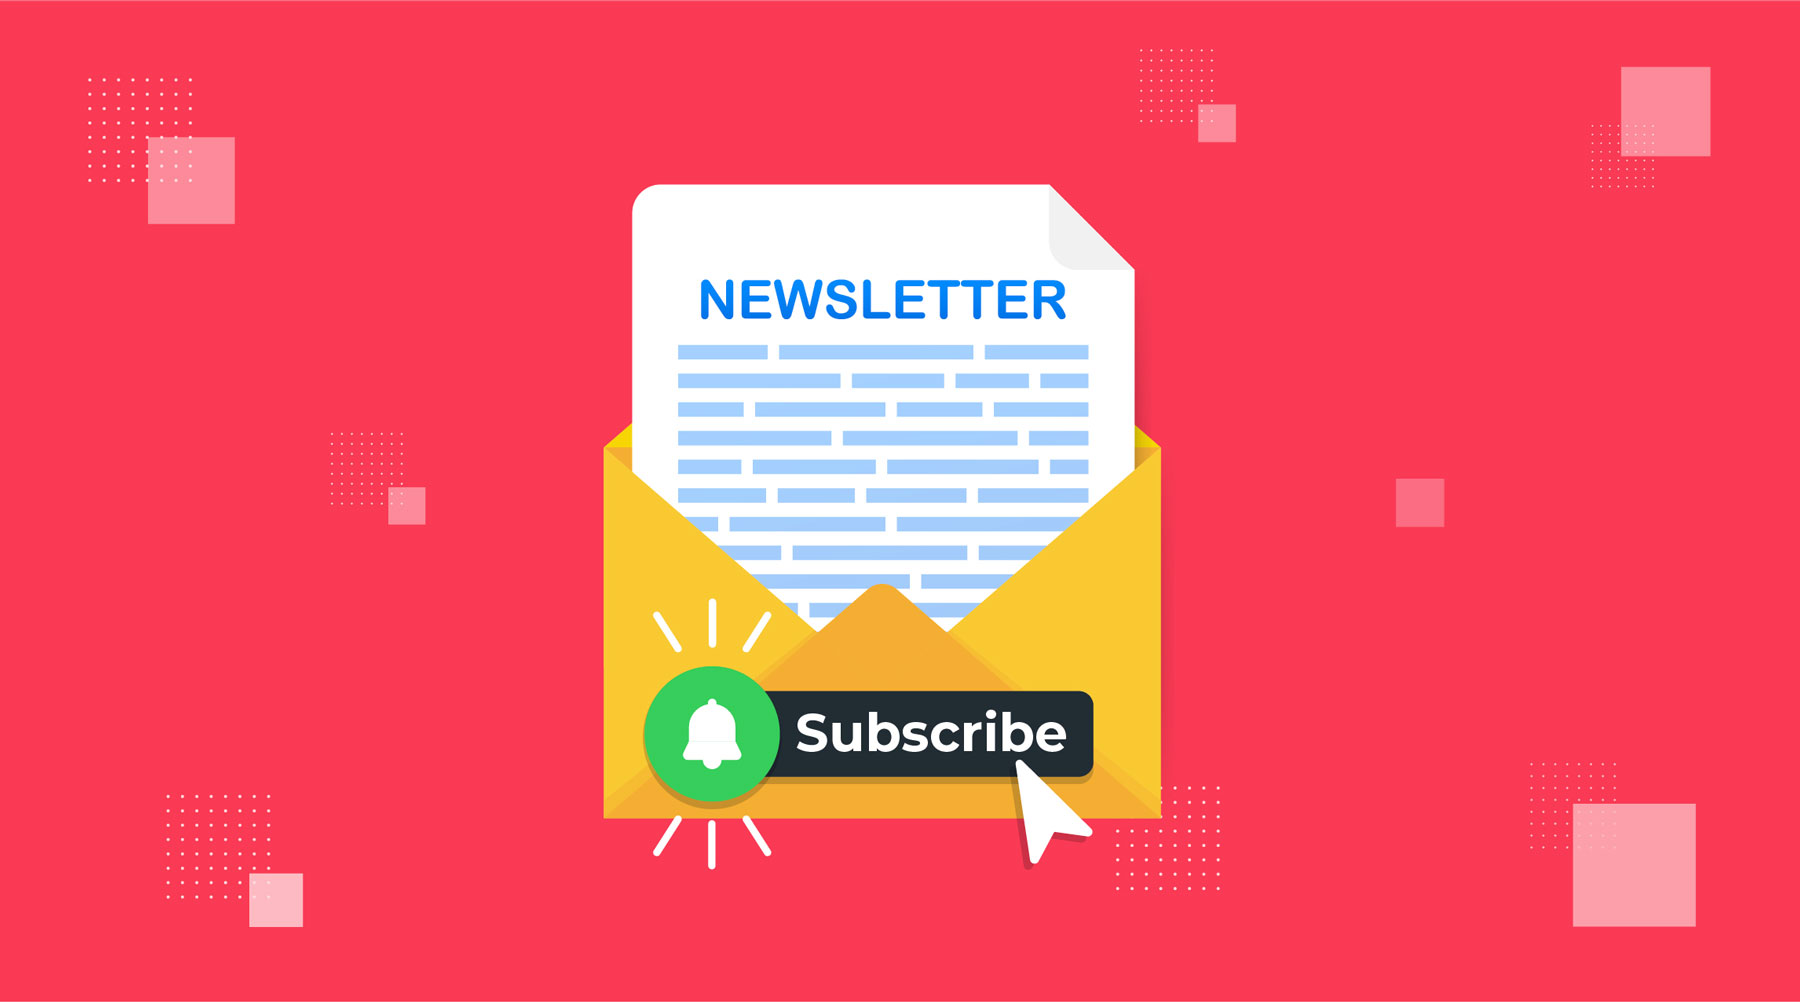 10 Best Marketing Newsletters You Should Subscribe to Now